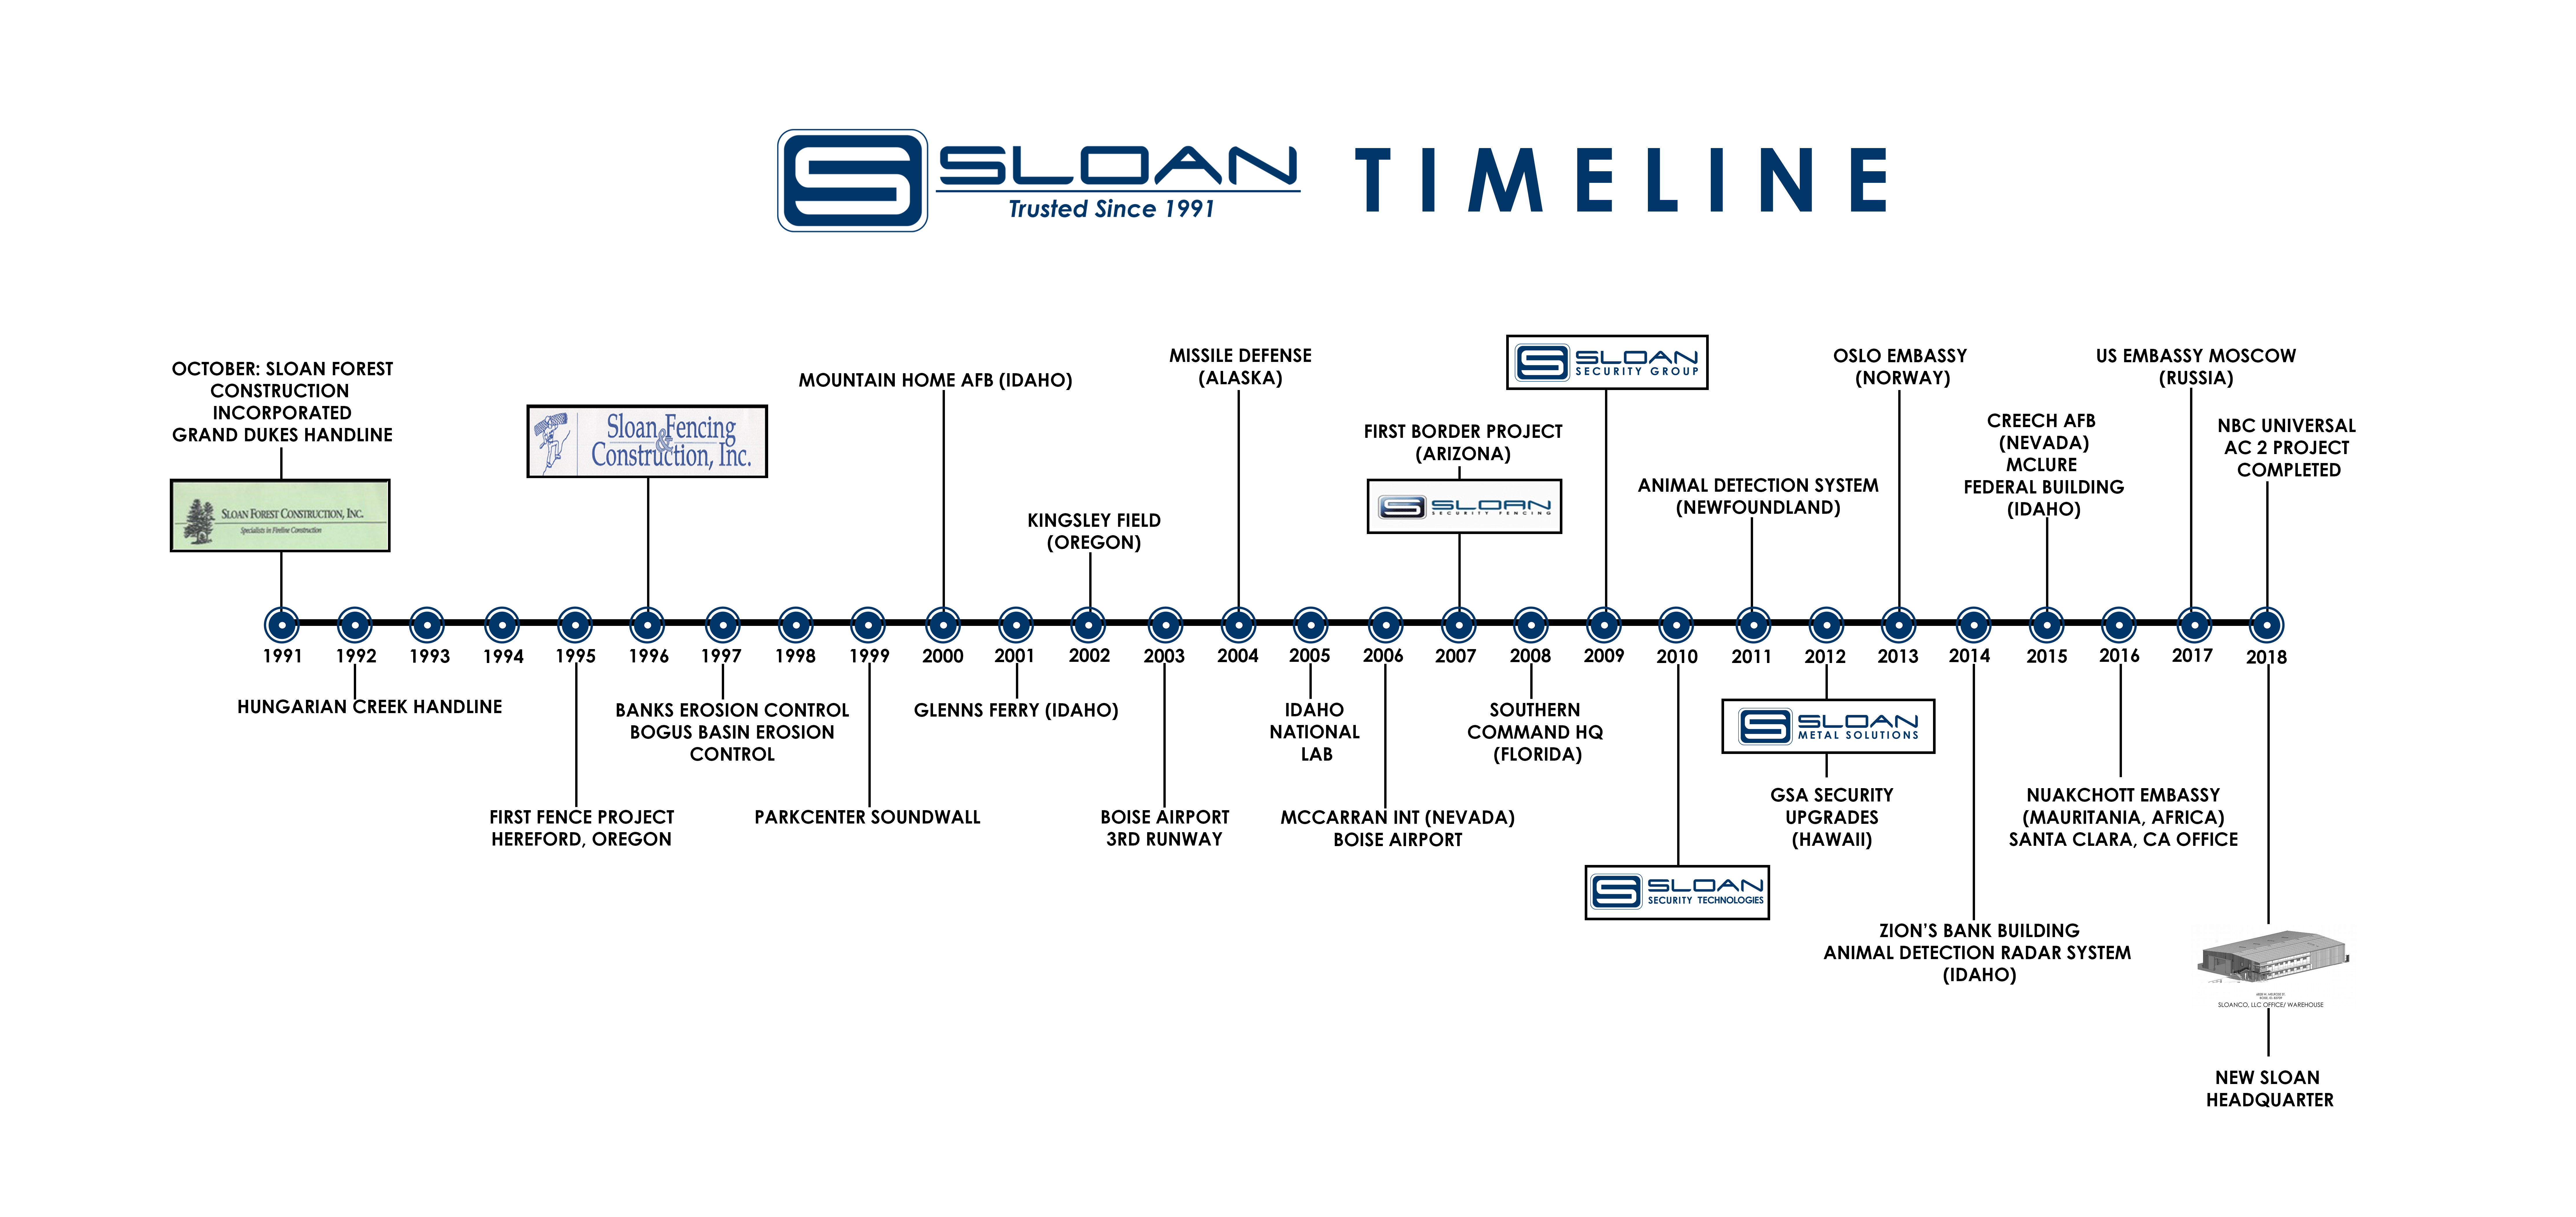 Timeline detailing the evolution of the Sloan Companies